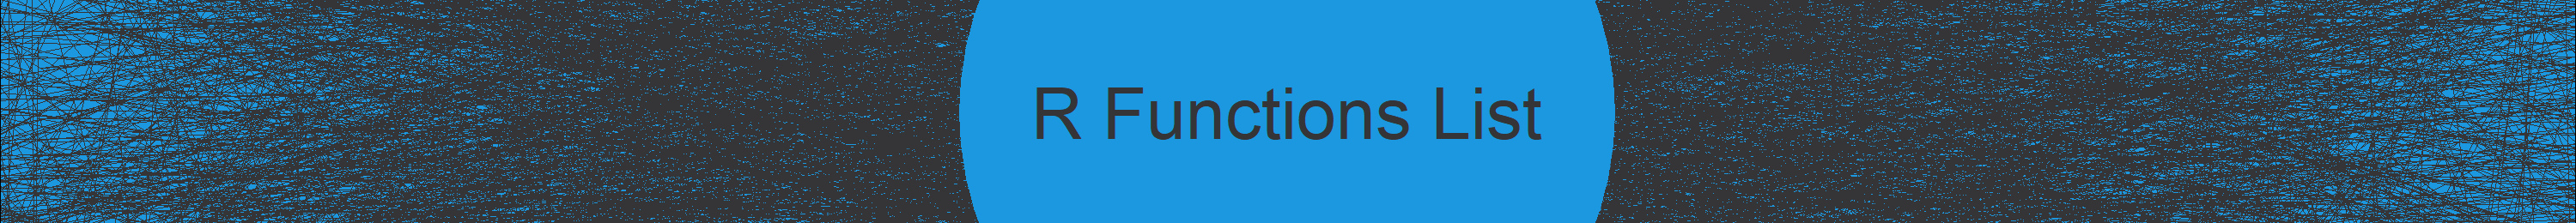 R Functions & Commands